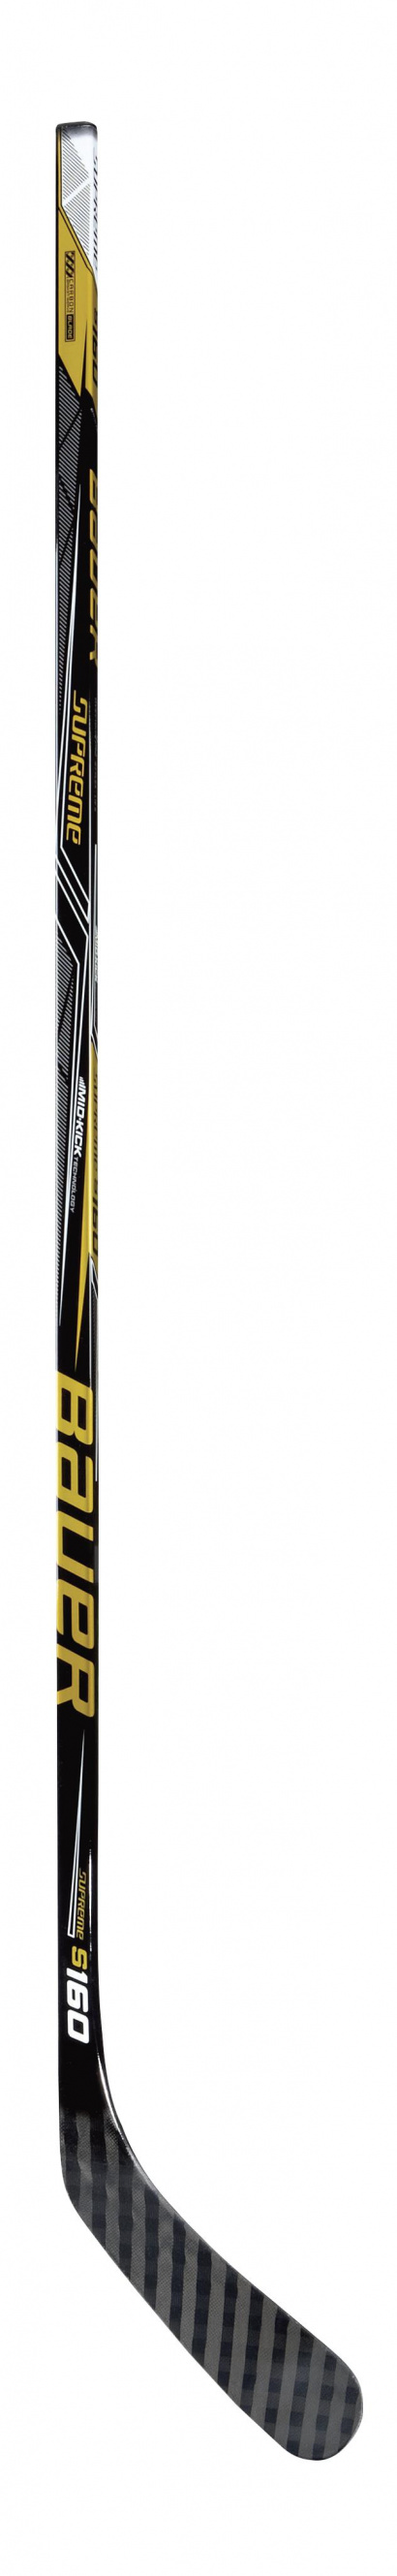 Hokejka Bauer SUPREME S160 Grip Jr / Junior 52